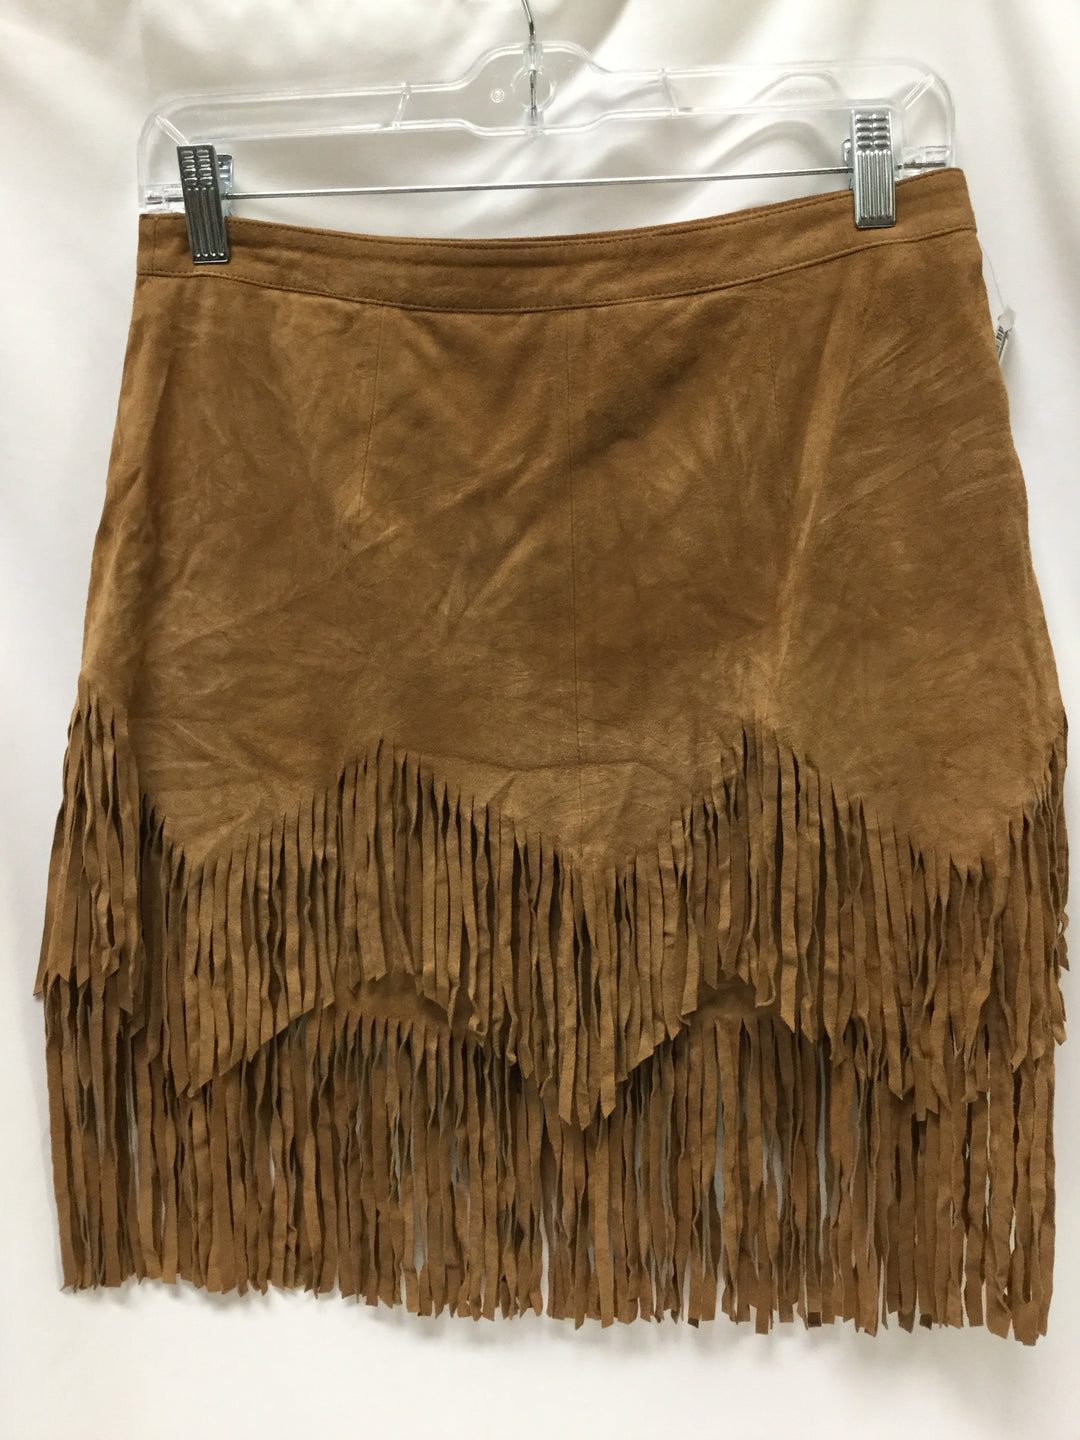 Primary Photo - BRAND: FREE PEOPLE <BR>STYLE: SKIRT <BR>COLOR: CAMEL <BR>SIZE: S <BR>SKU: 155-15545-209121